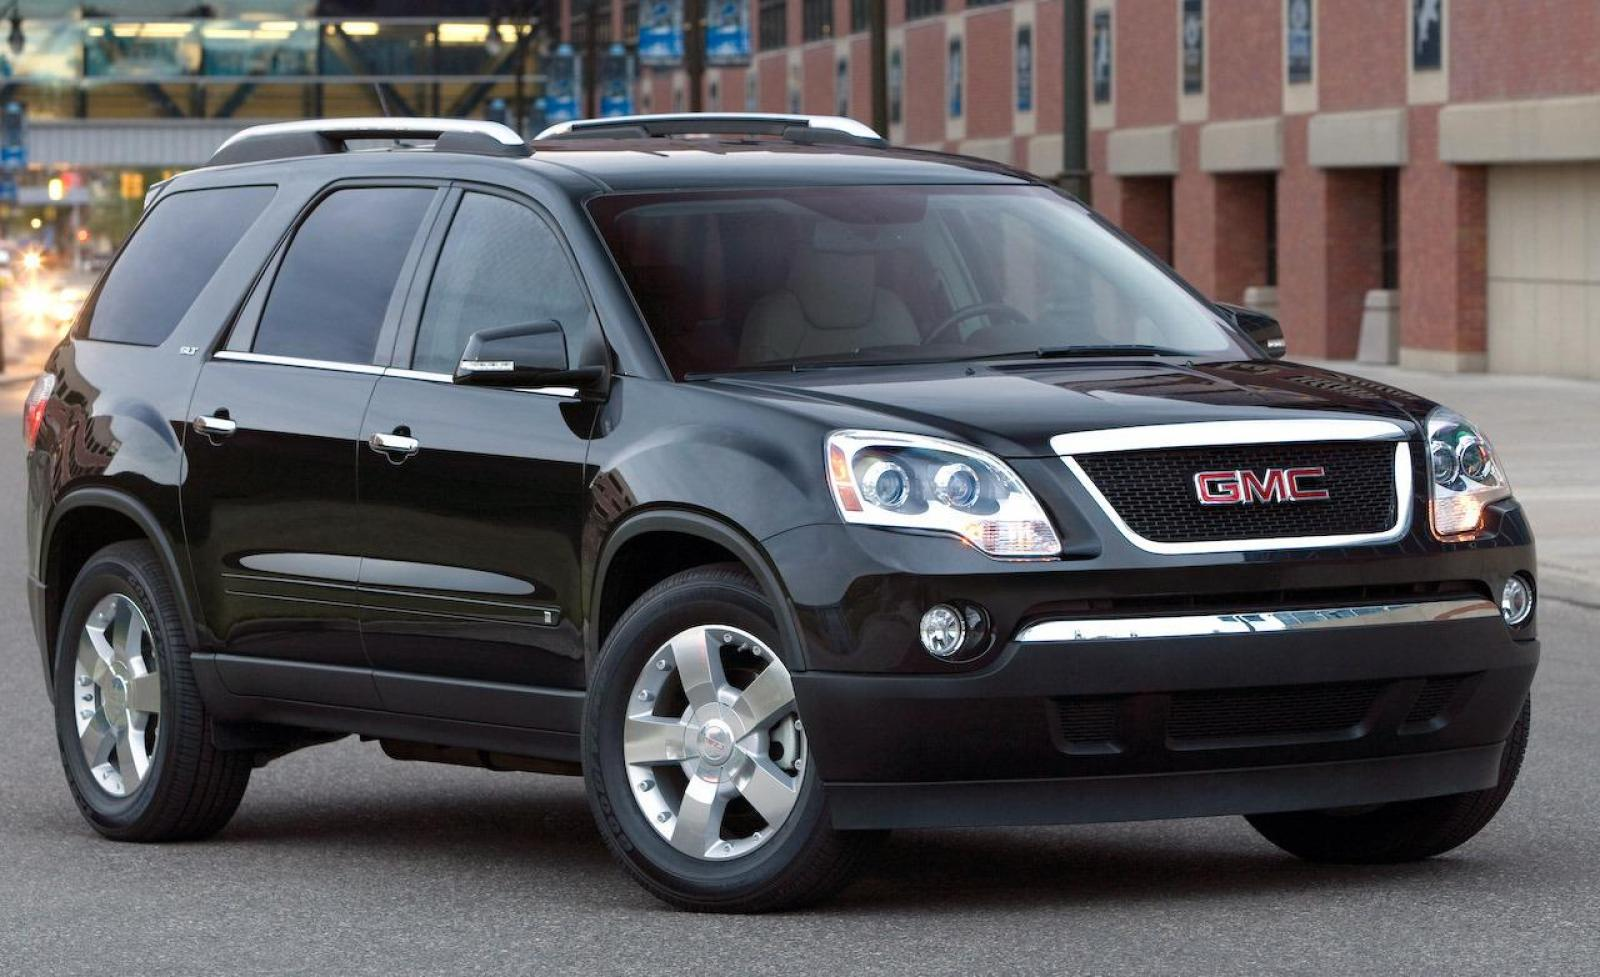 2009 gmc acadia information and photos zombiedrive. Black Bedroom Furniture Sets. Home Design Ideas